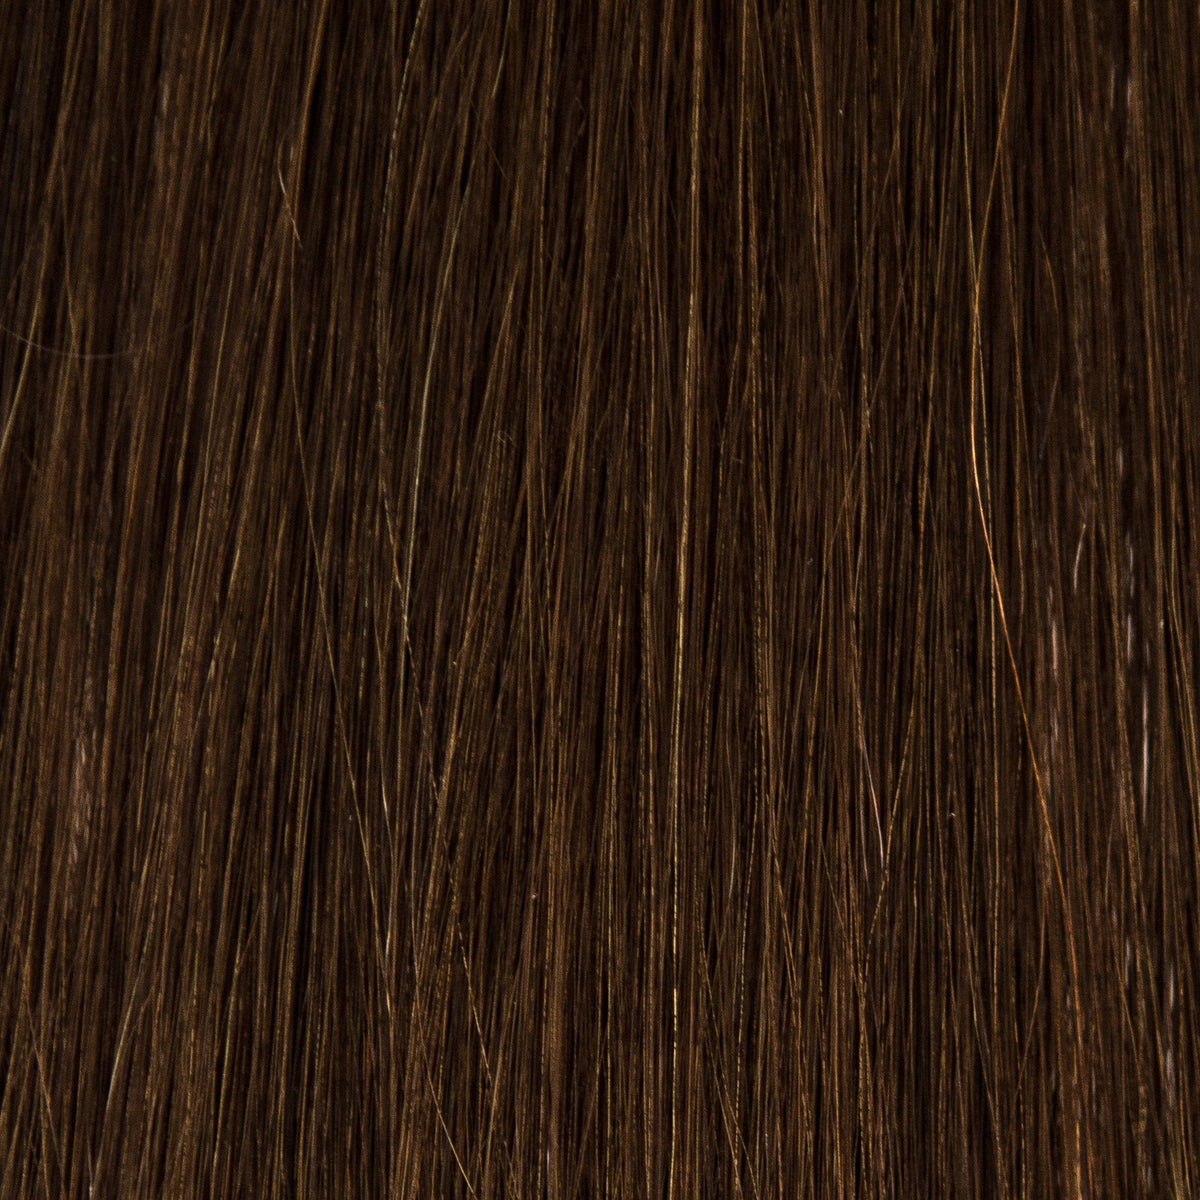 Laced Hair I-Tip Extensions #2 (Chocolate)